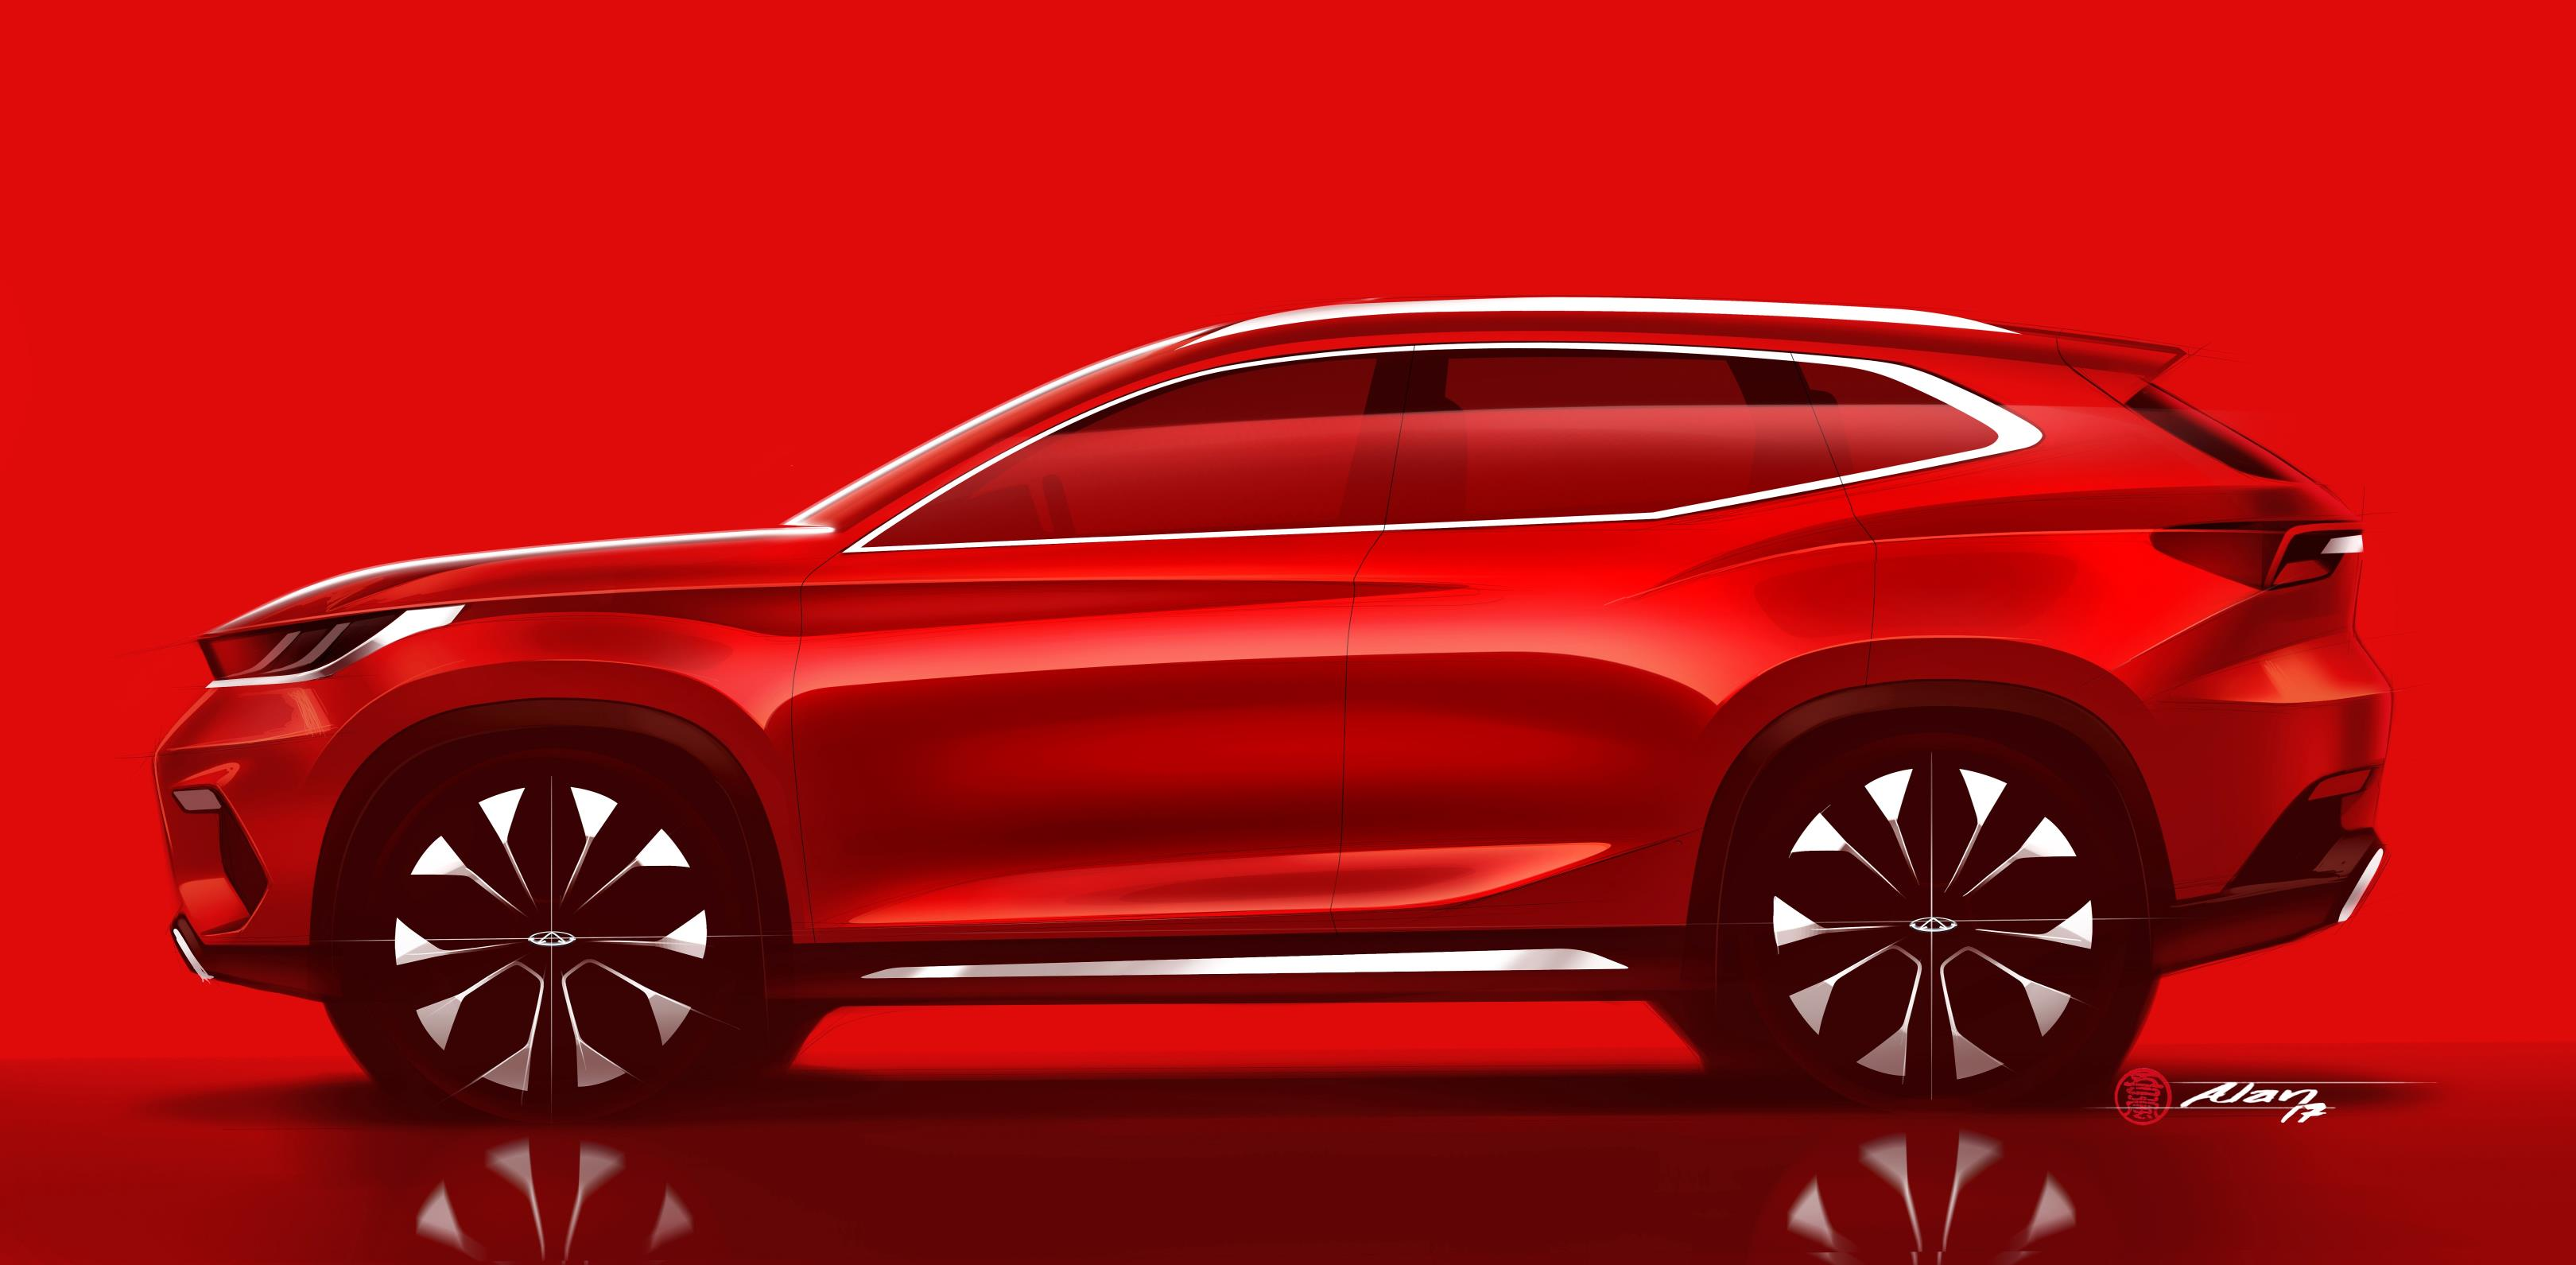 Local Market Tool >> Chery Tiggo Coupe Concept, new SUV for Frankfurt